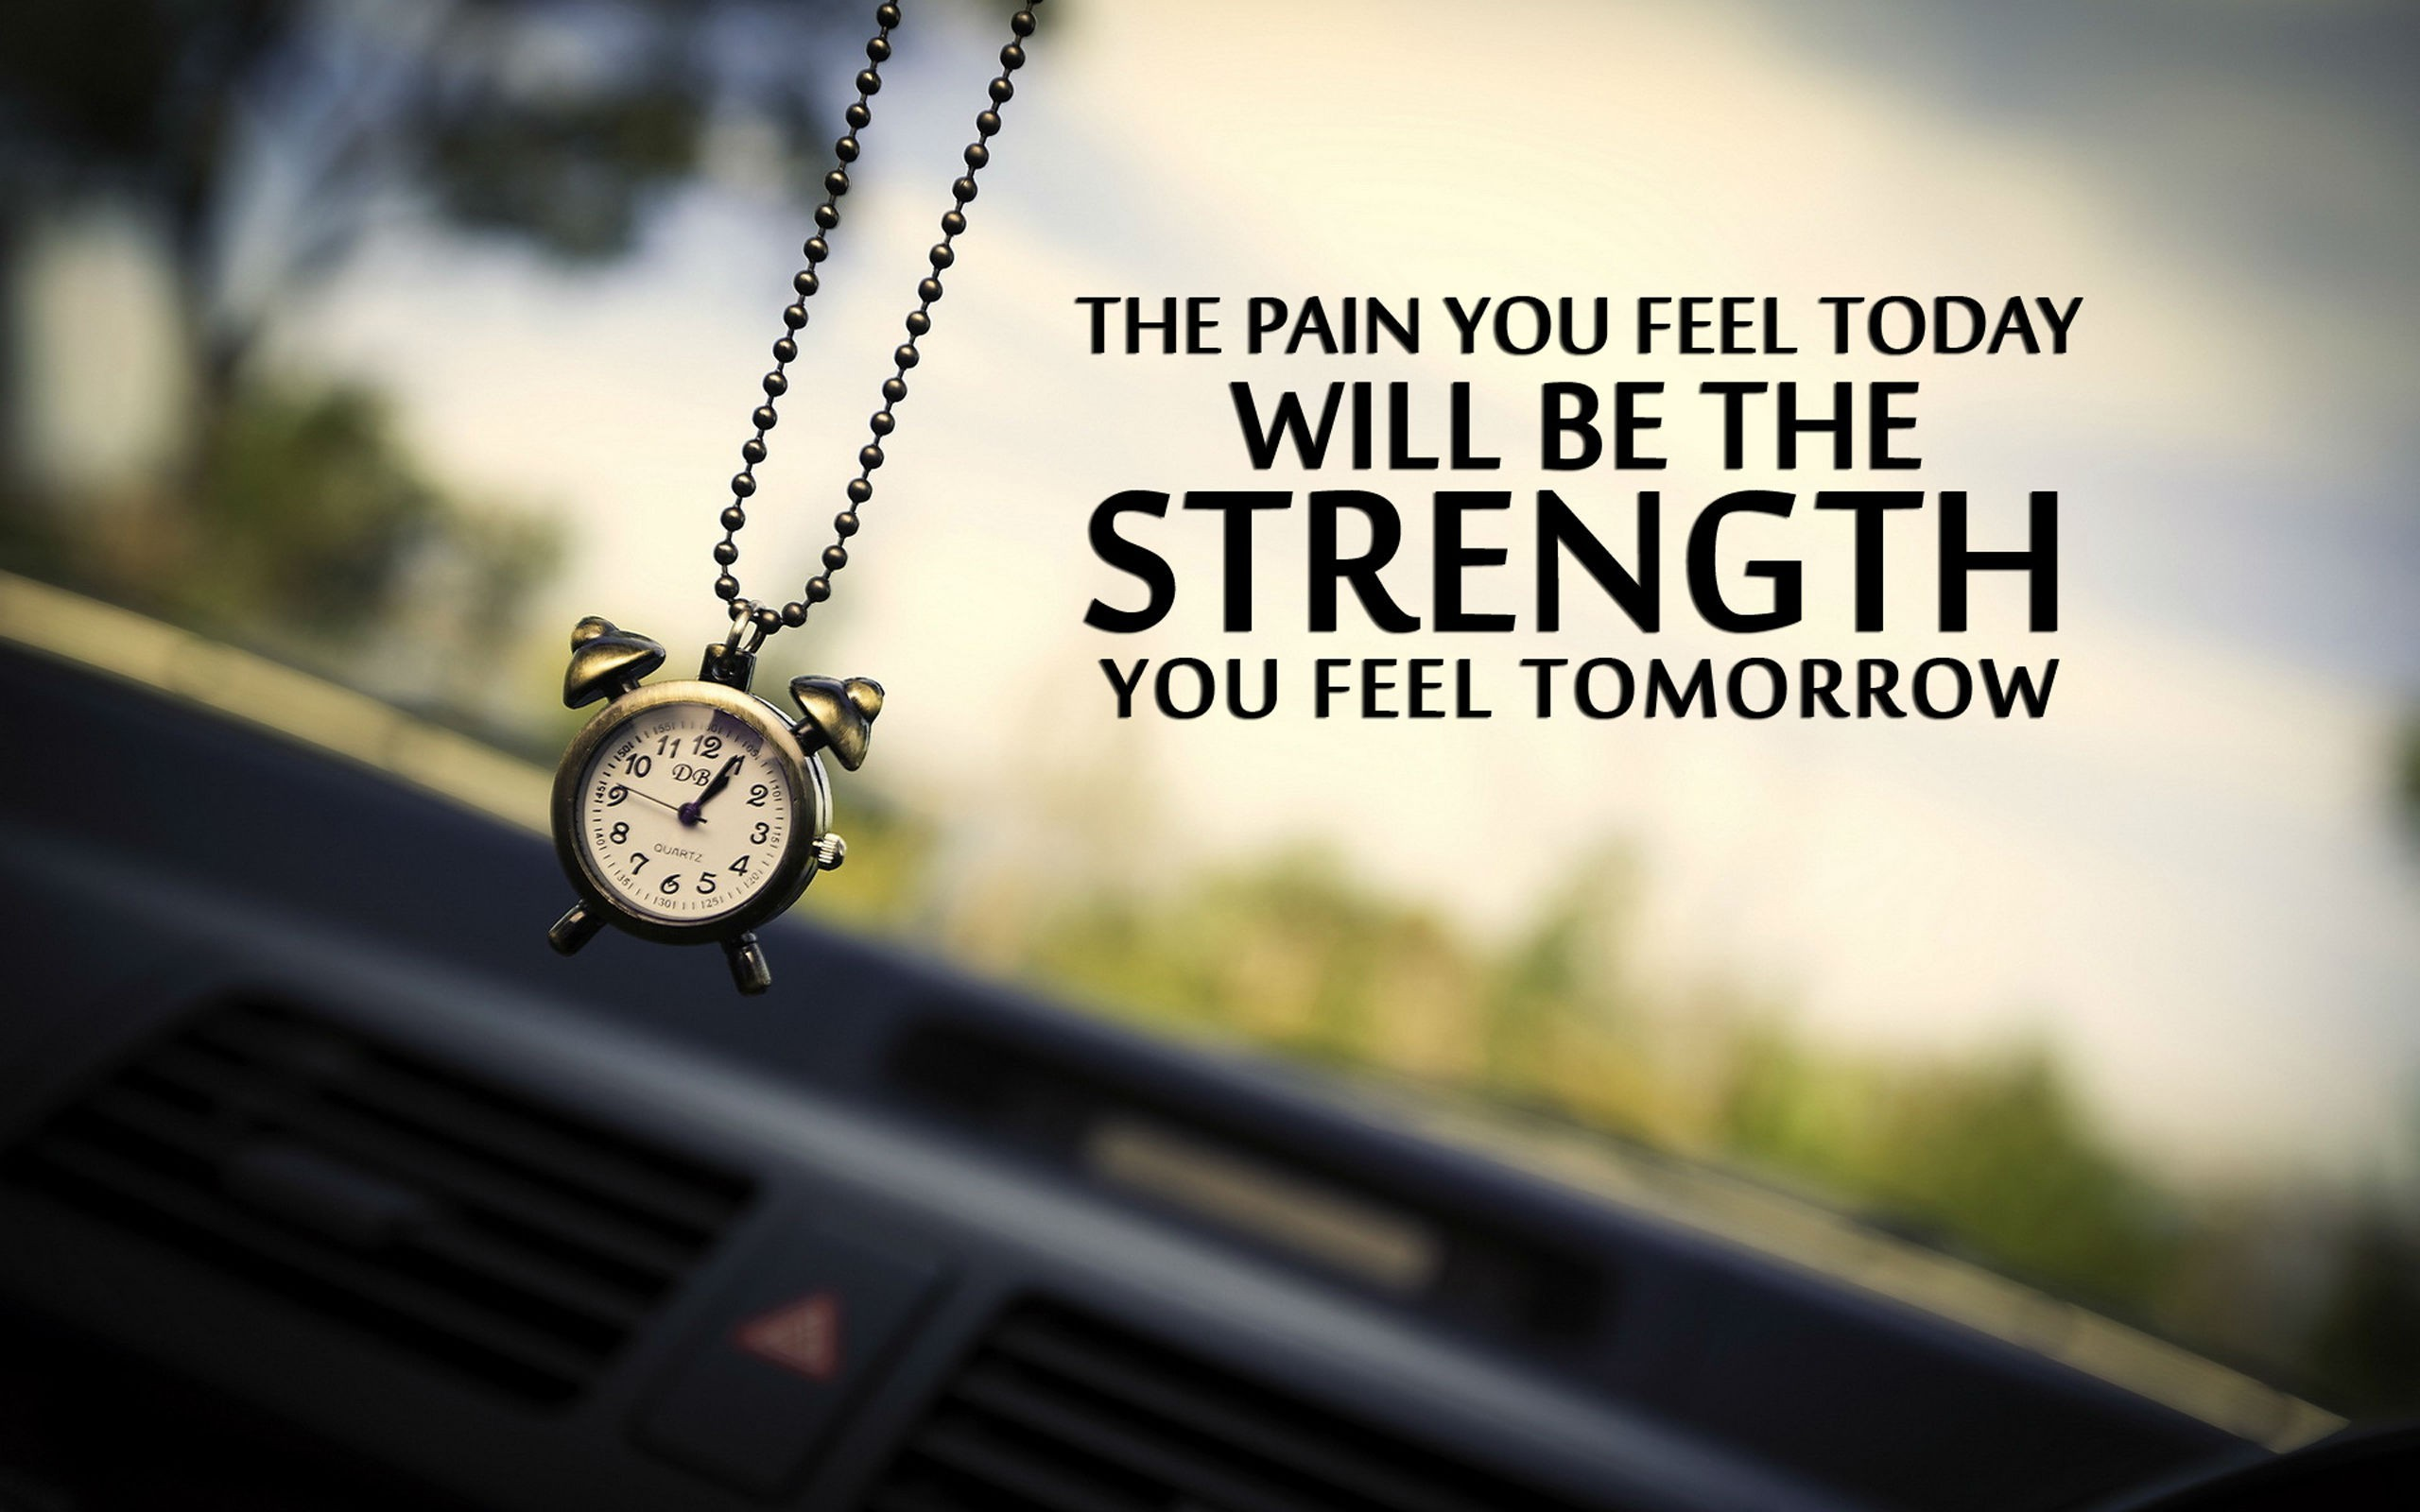 Amazing Inspirational Quotes Hd Wallpaper Laptop Background Difficult Time Strength Inspirational Quotes 1920x1200 Wallpaper Teahub Io